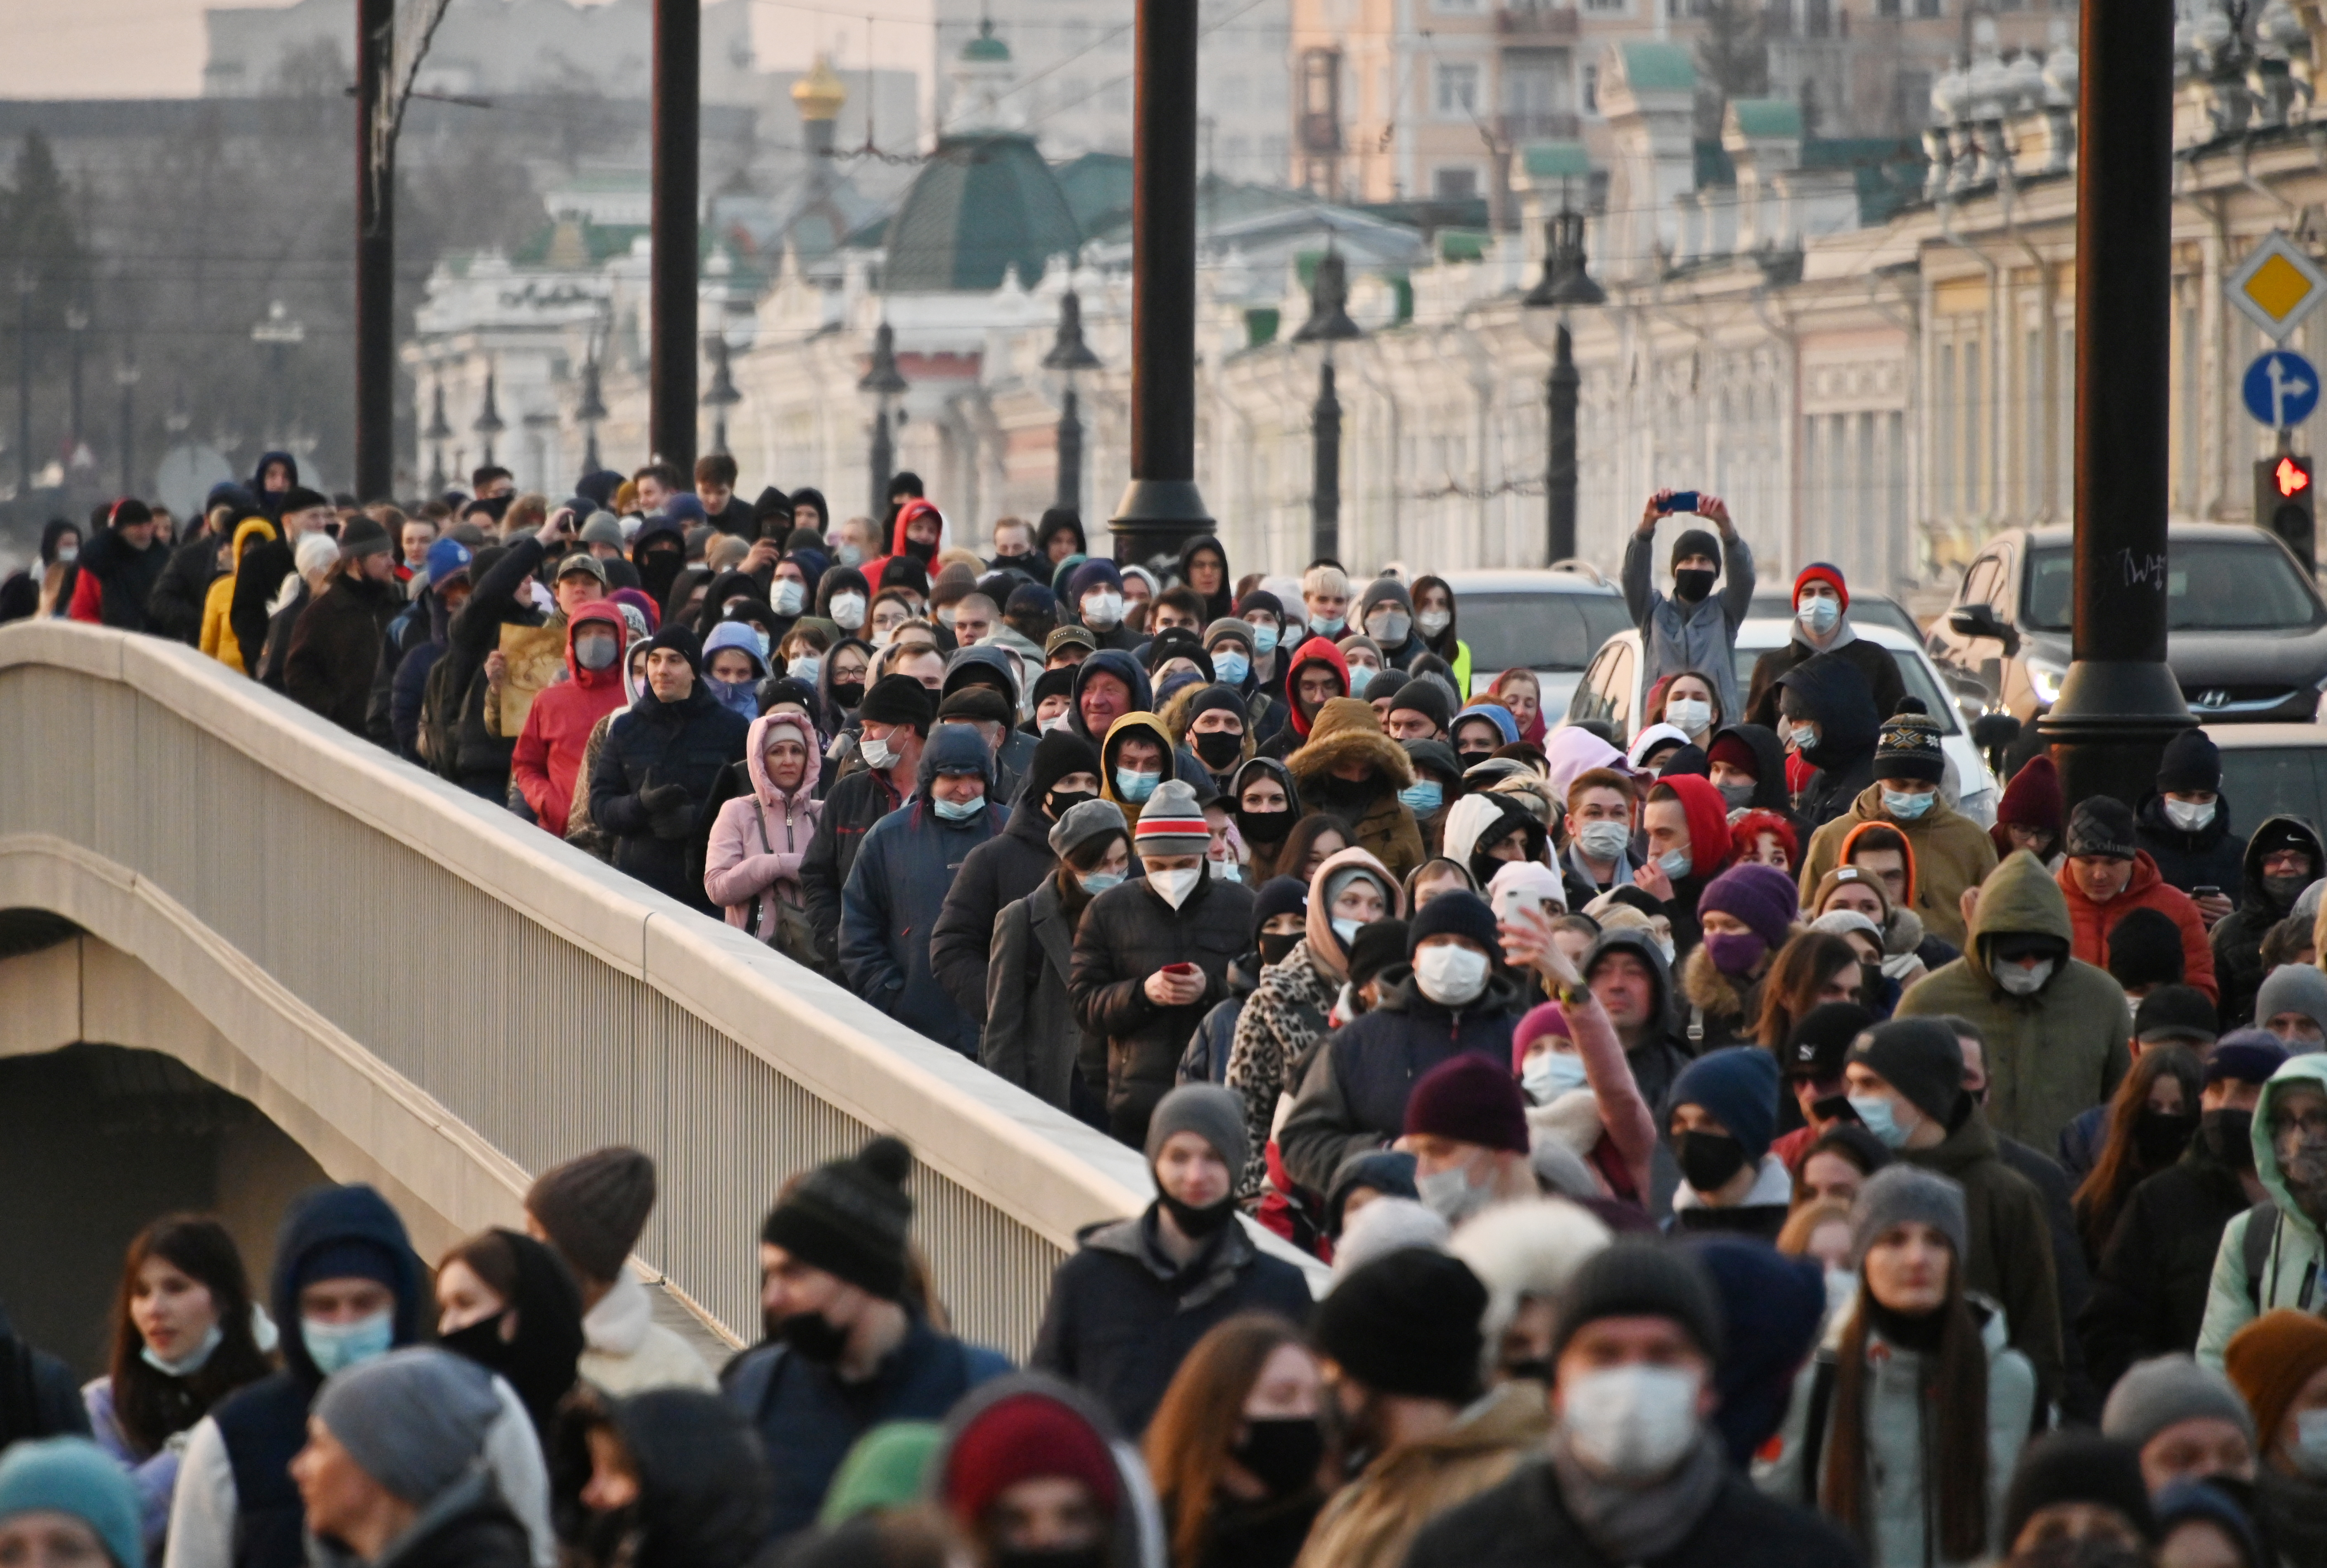 Demonstrators march during a rally insupportof jailed Russian opposition politician AlexeiNavalny in Omsk, Russia April 21, 2021. REUTERS/Alexey Malgavko